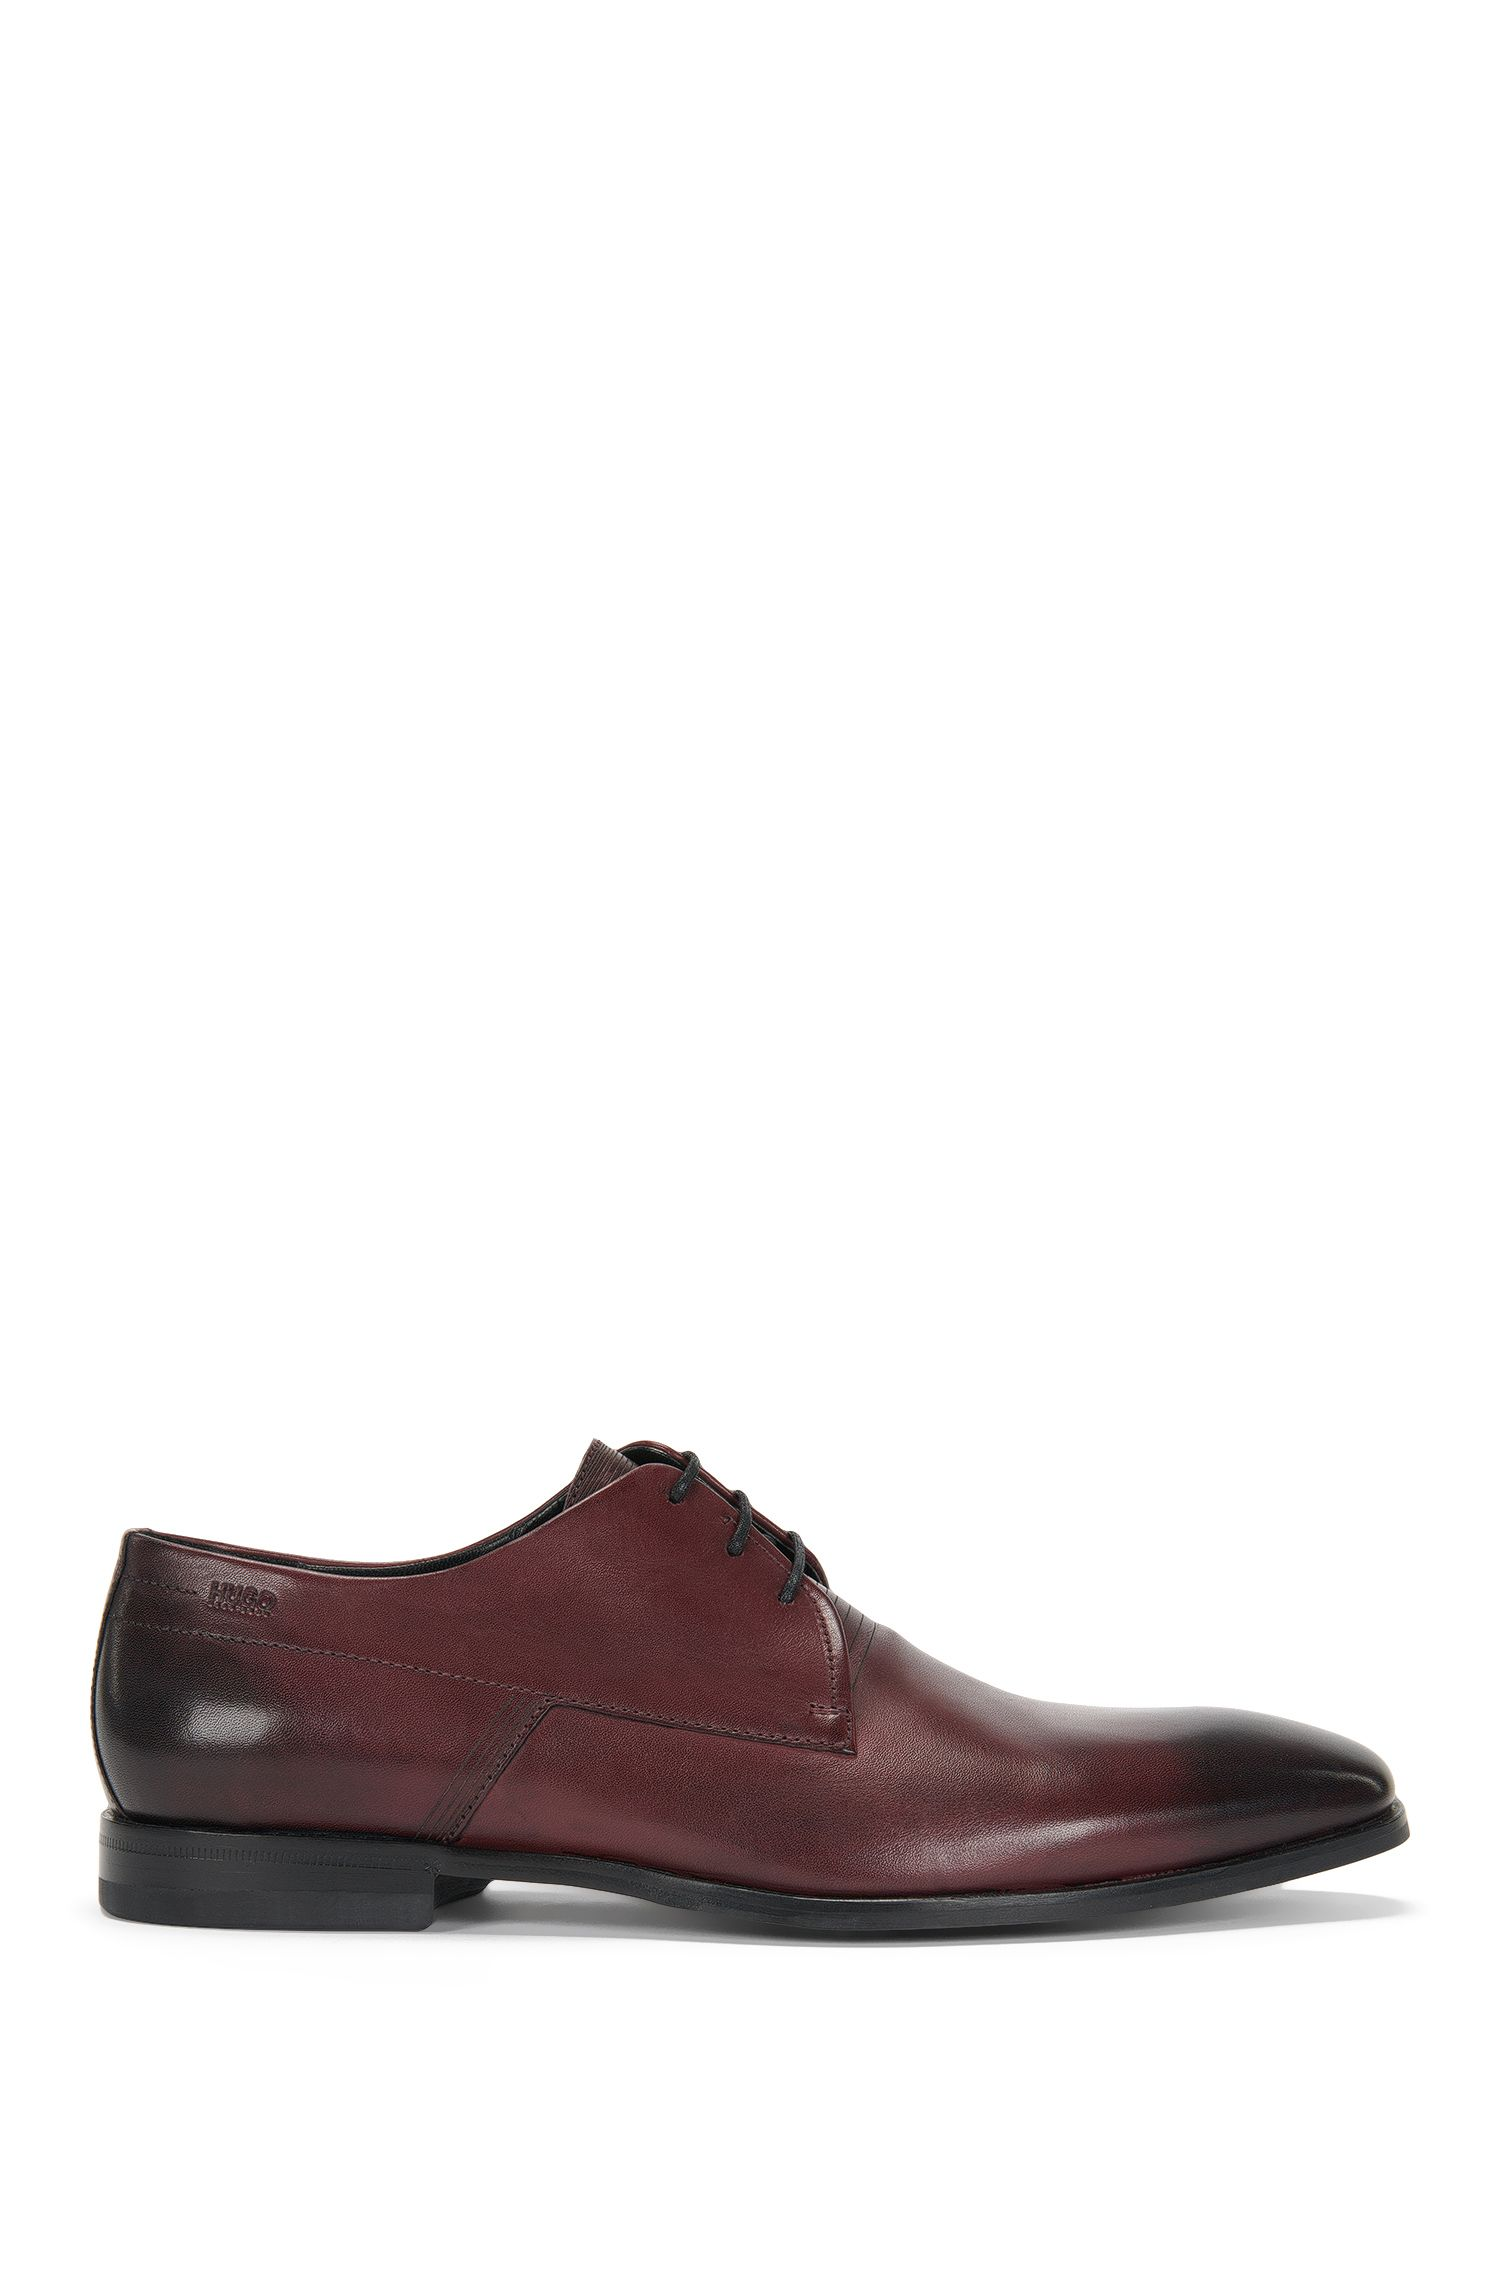 Leather lace-up shoes with lasered detail: 'Square_Derb_ltls'